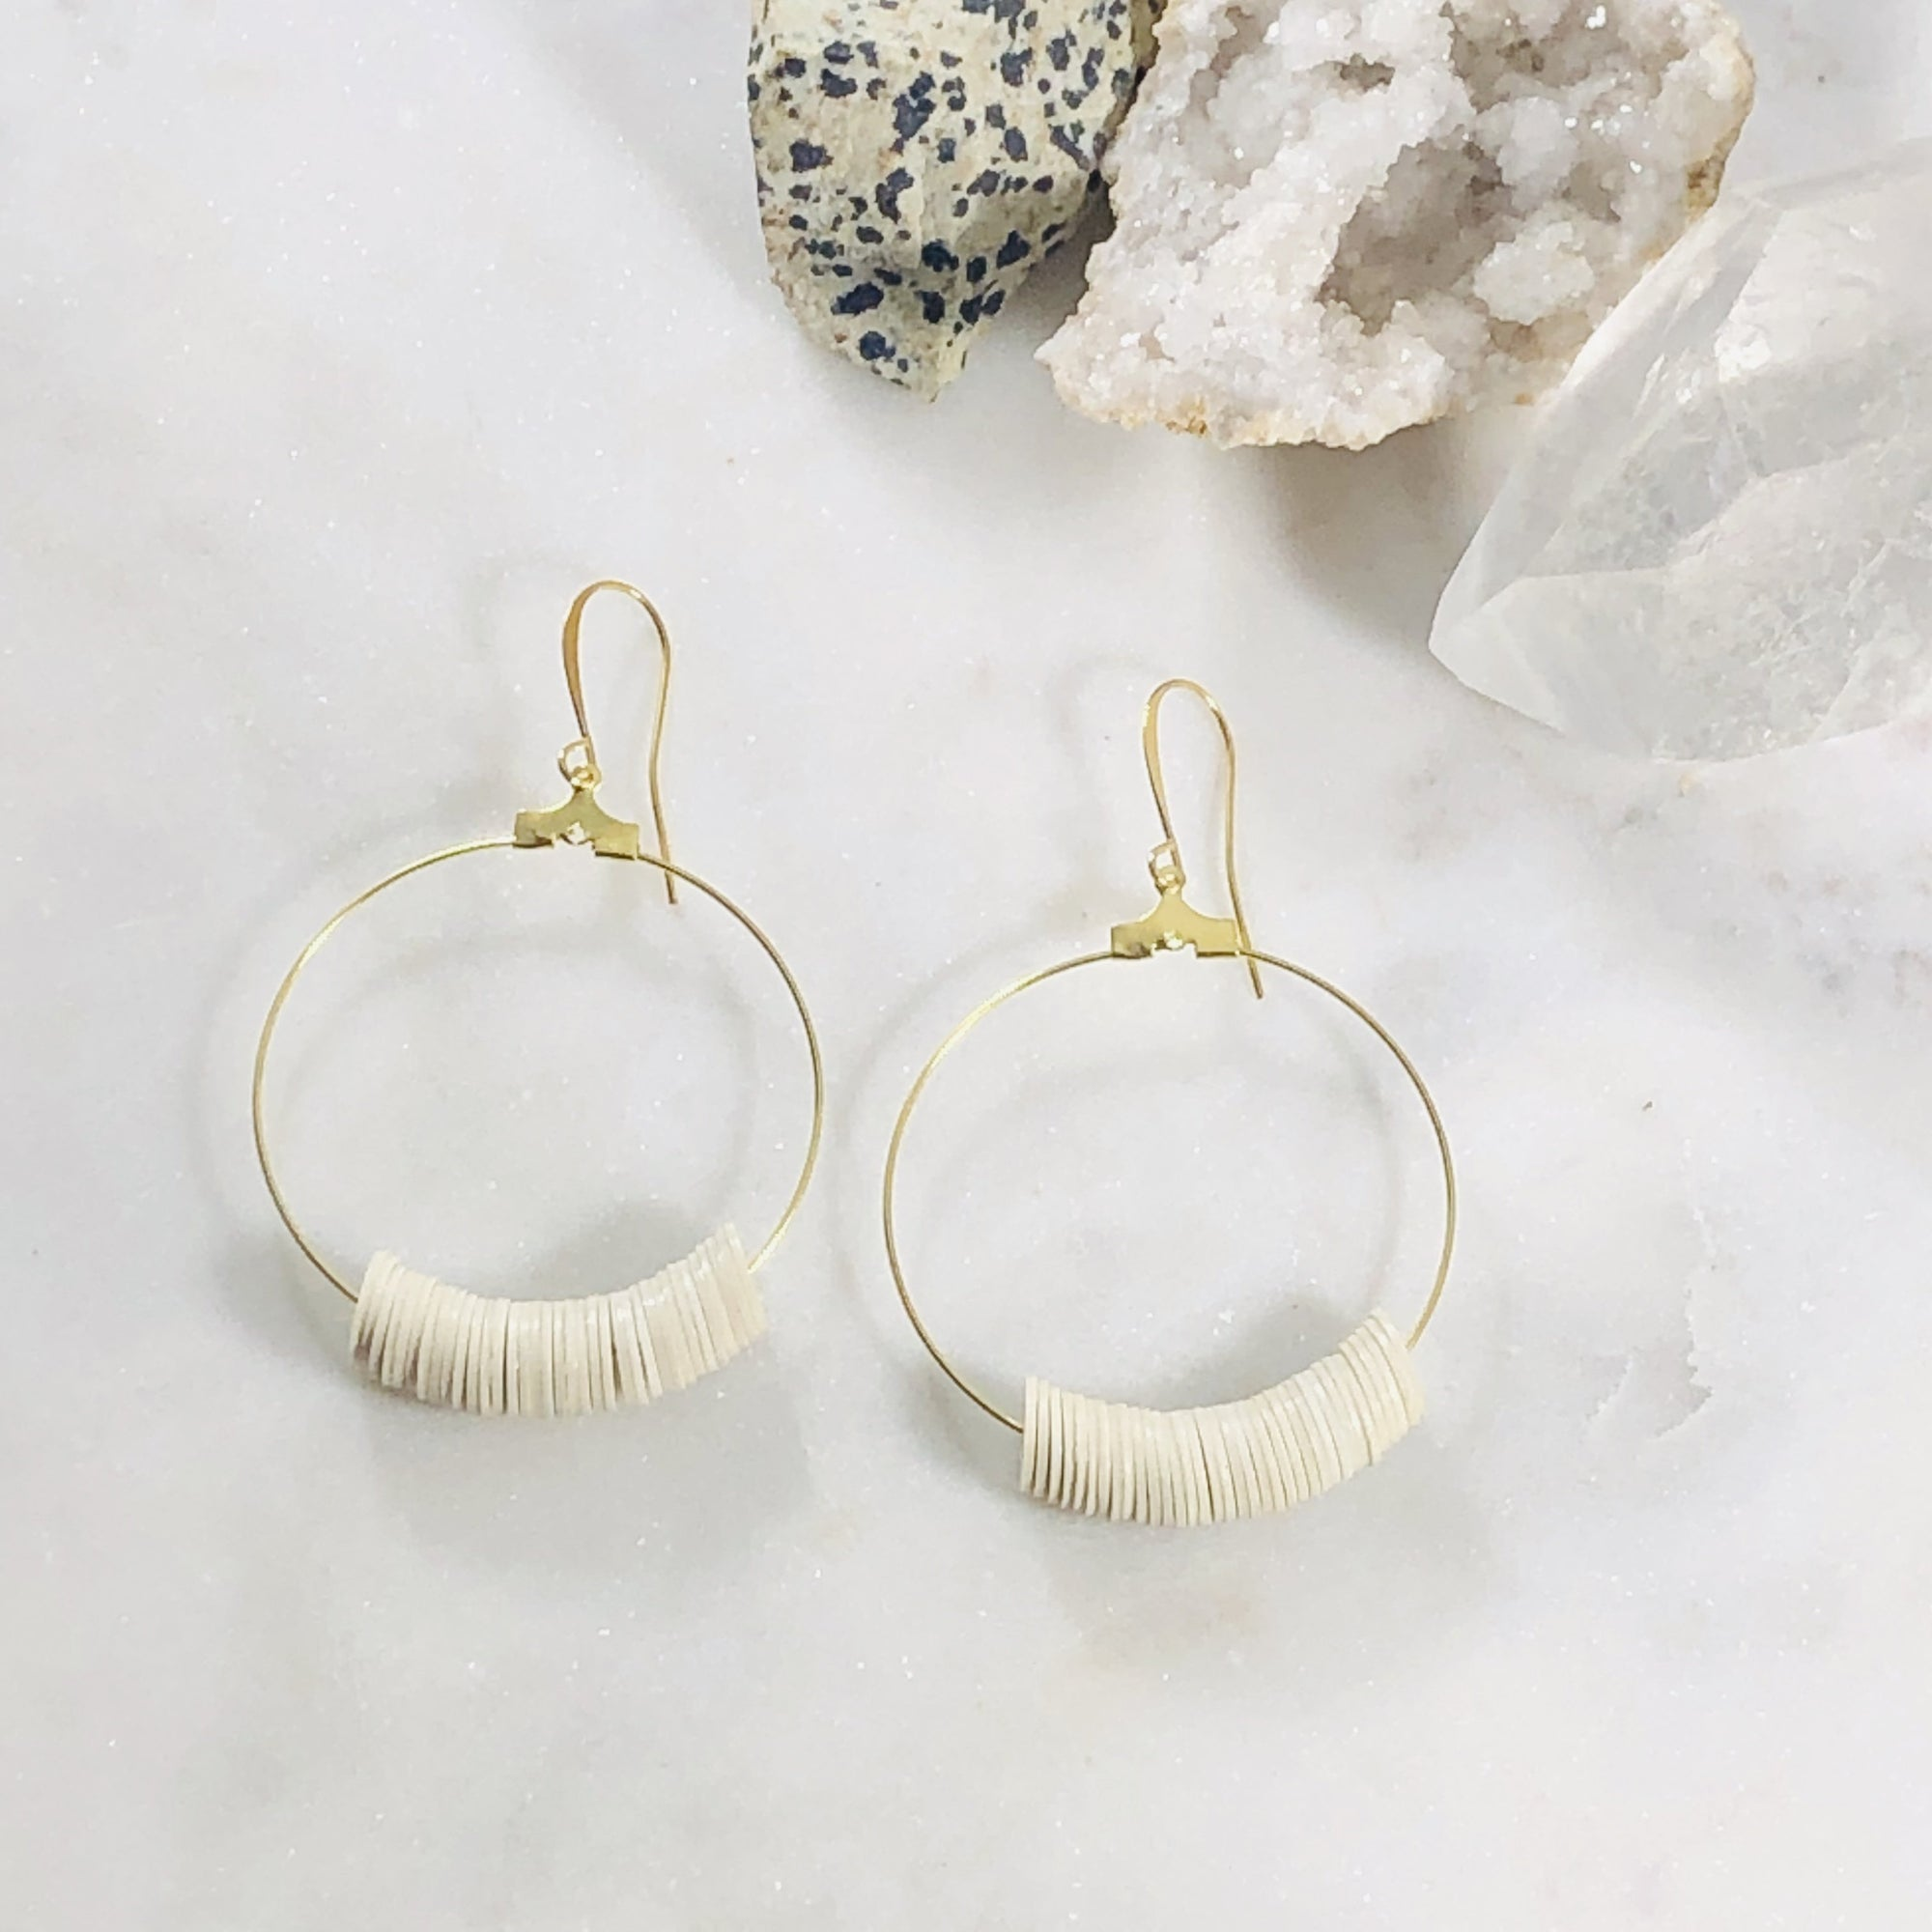 Handmade cream dottie hoop earrings by Sarah Belle